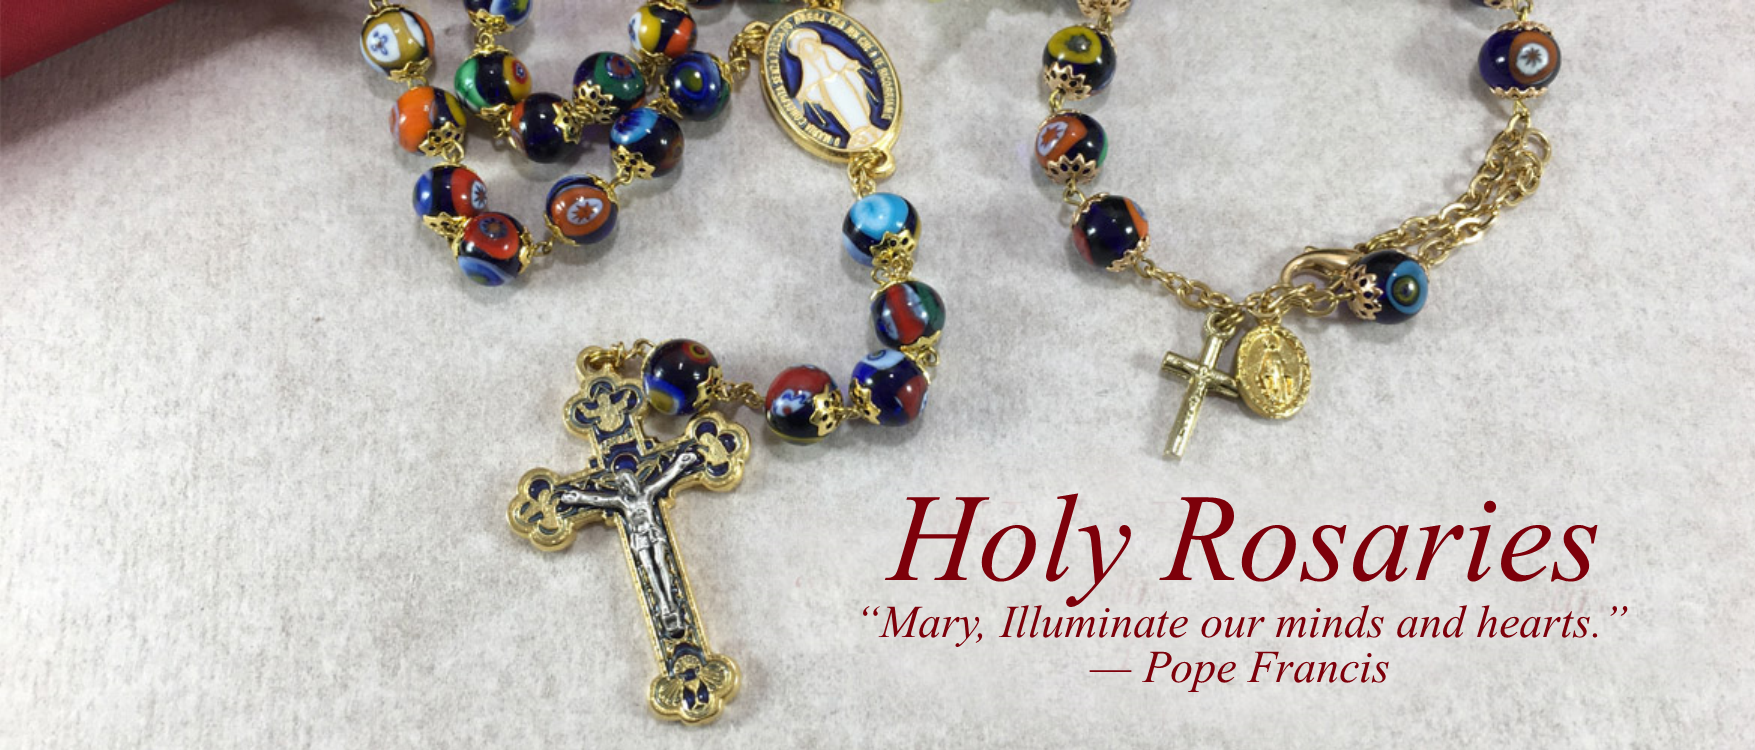 1 Holy Rosaries - Home Page Slider